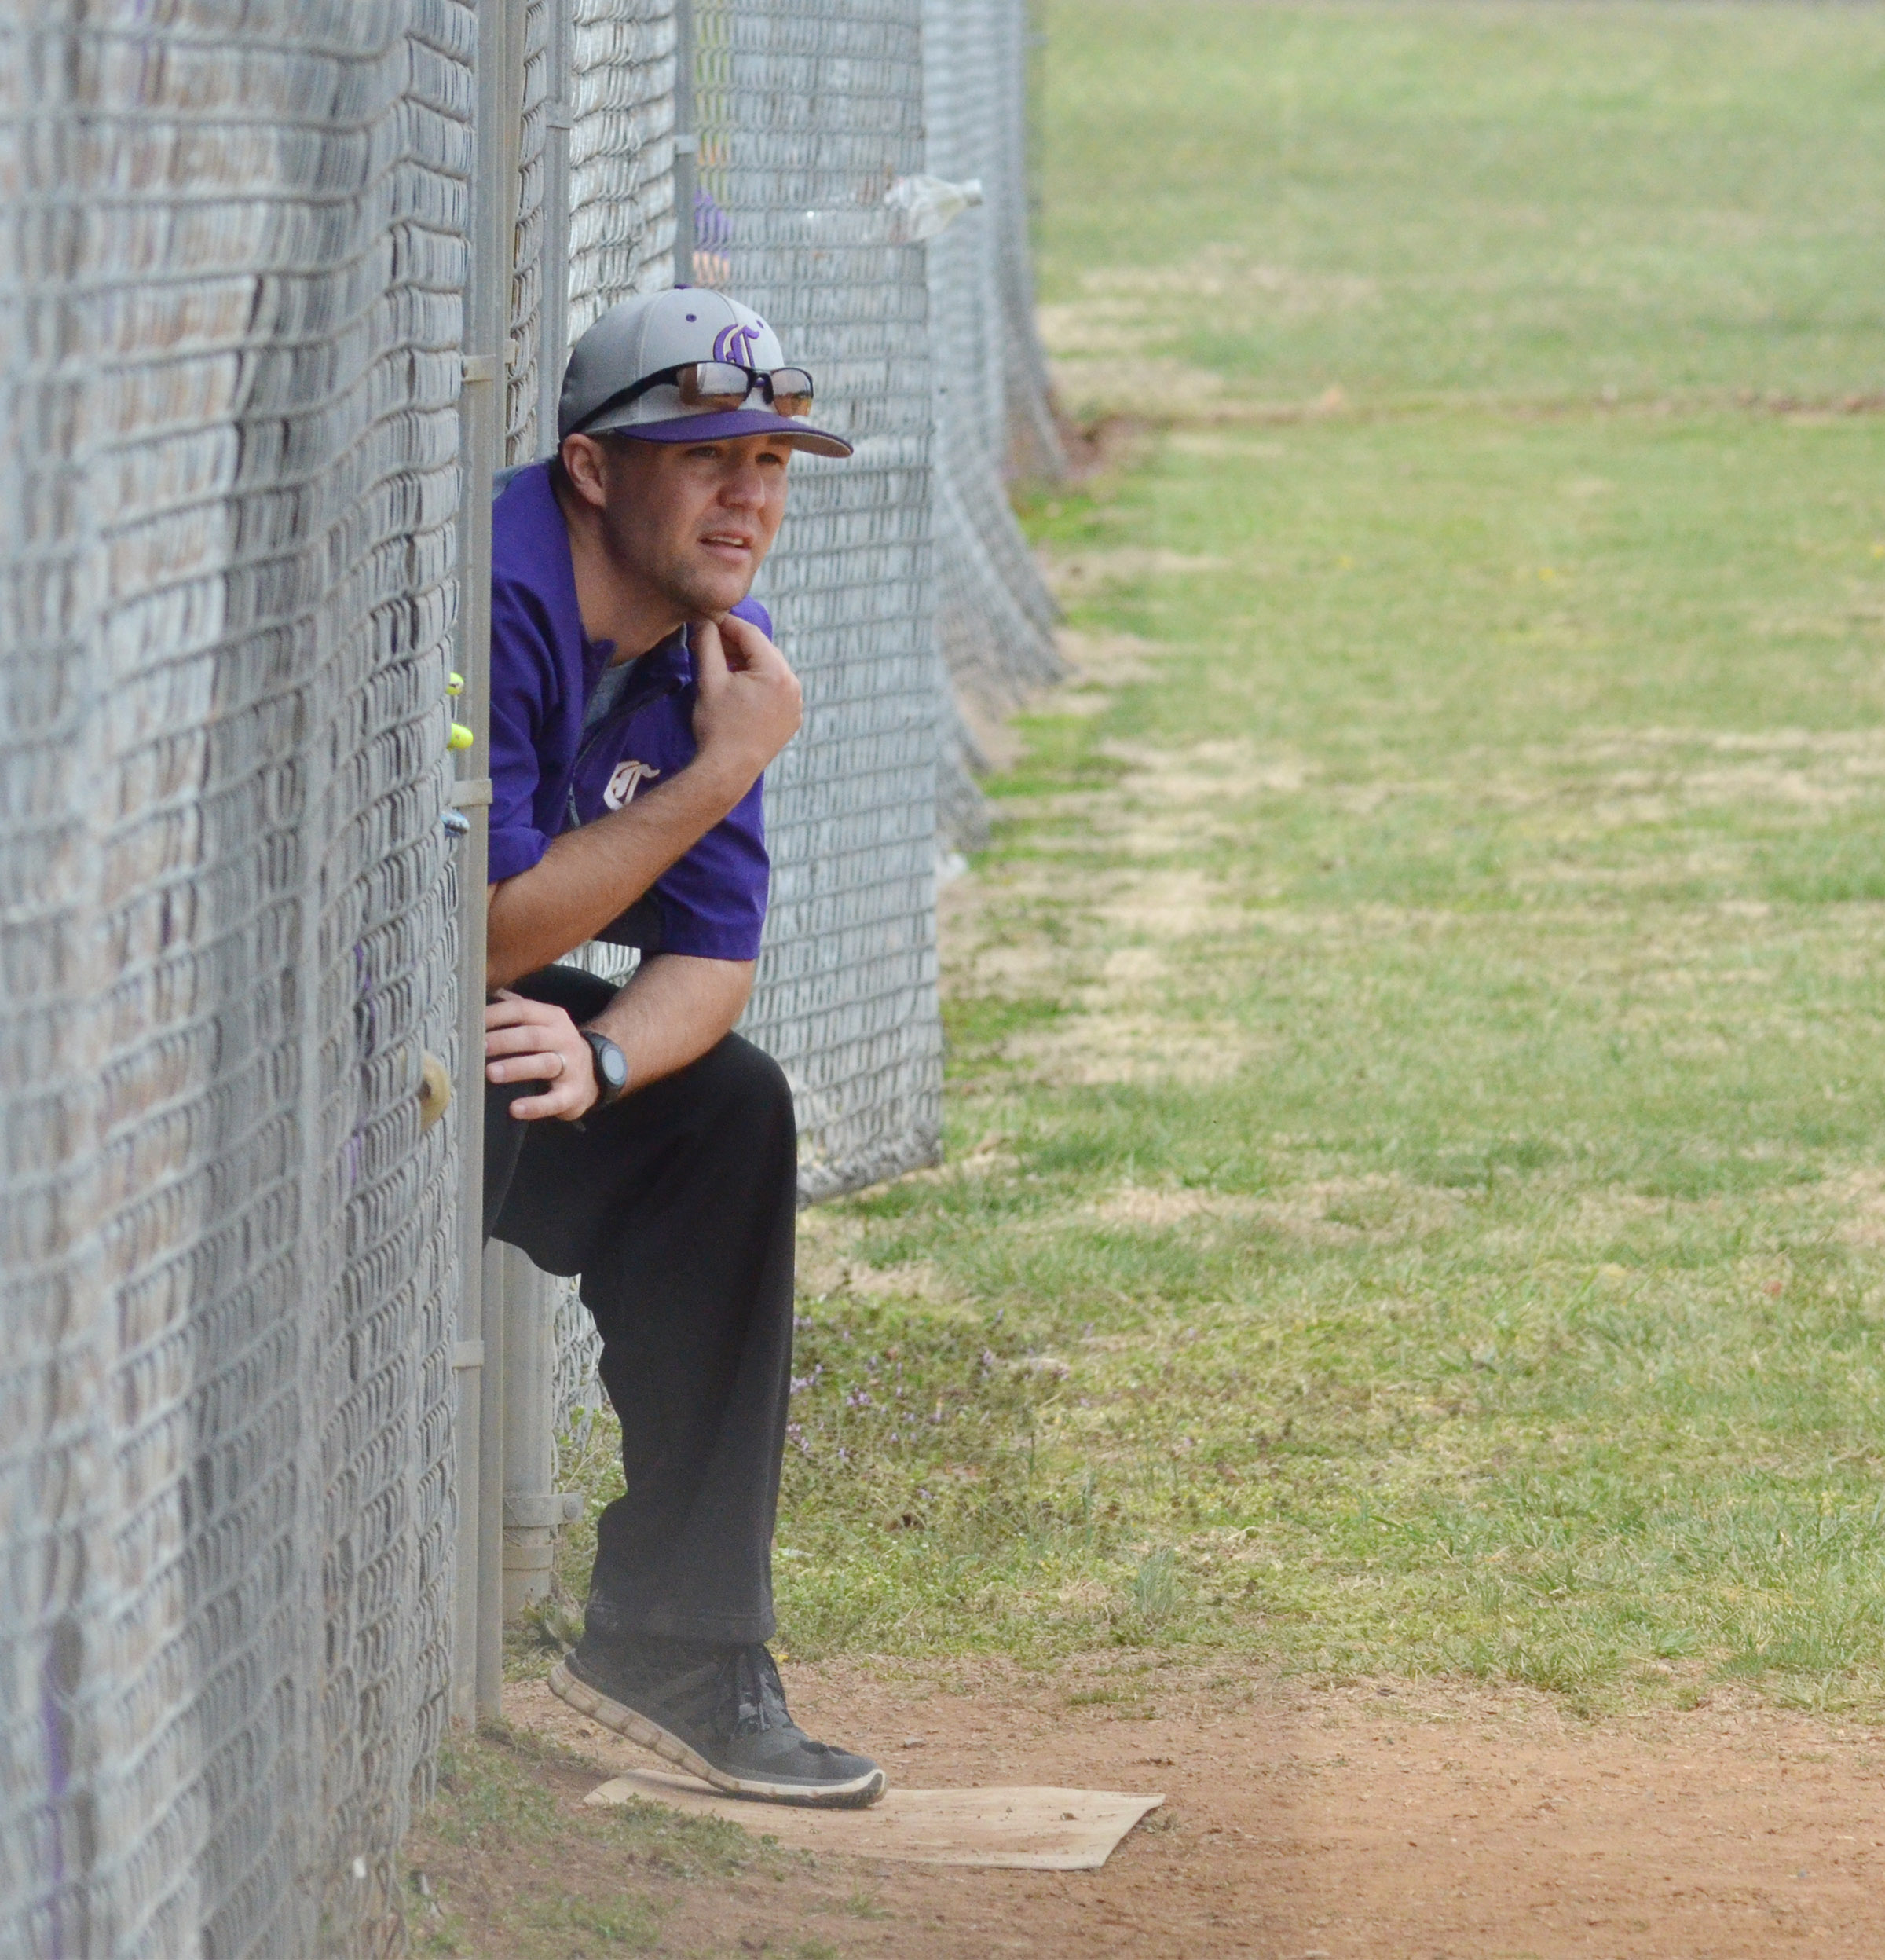 CHS head softball coach Weston Jones watches as his players take the field.